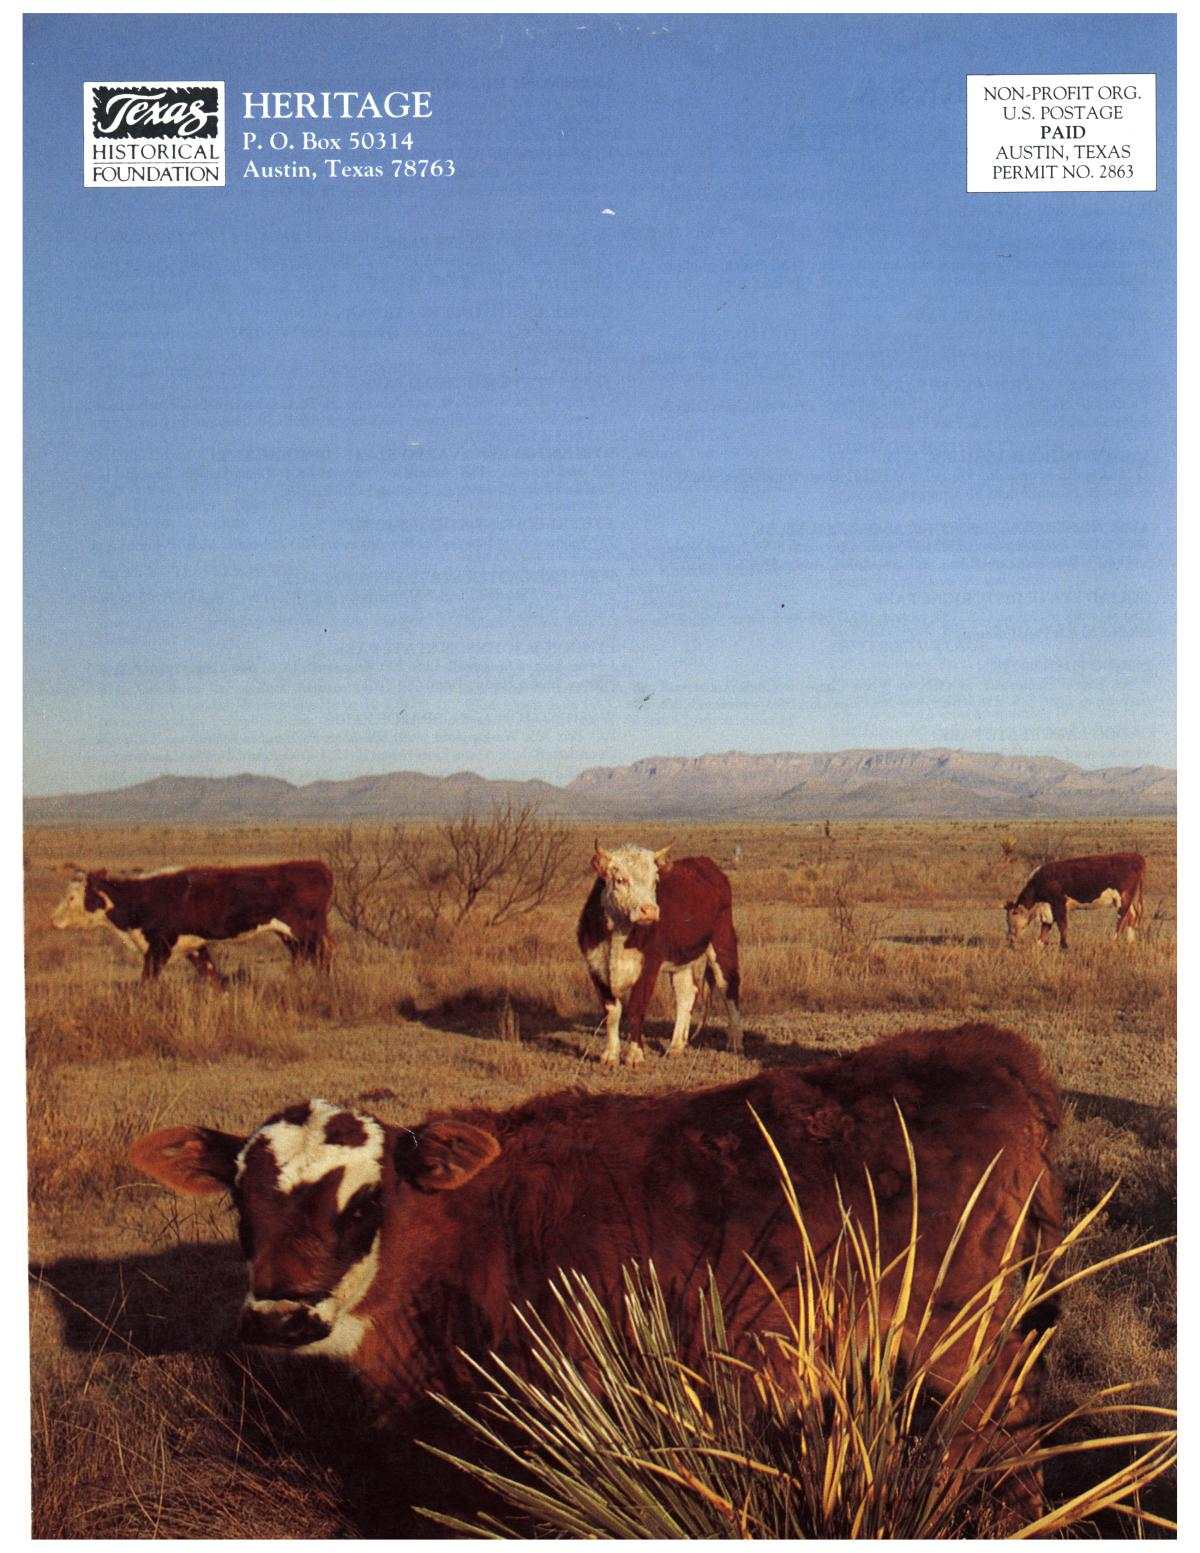 Heritage, Volume 12, Number 1, Winter 1994                                                                                                      Back Cover